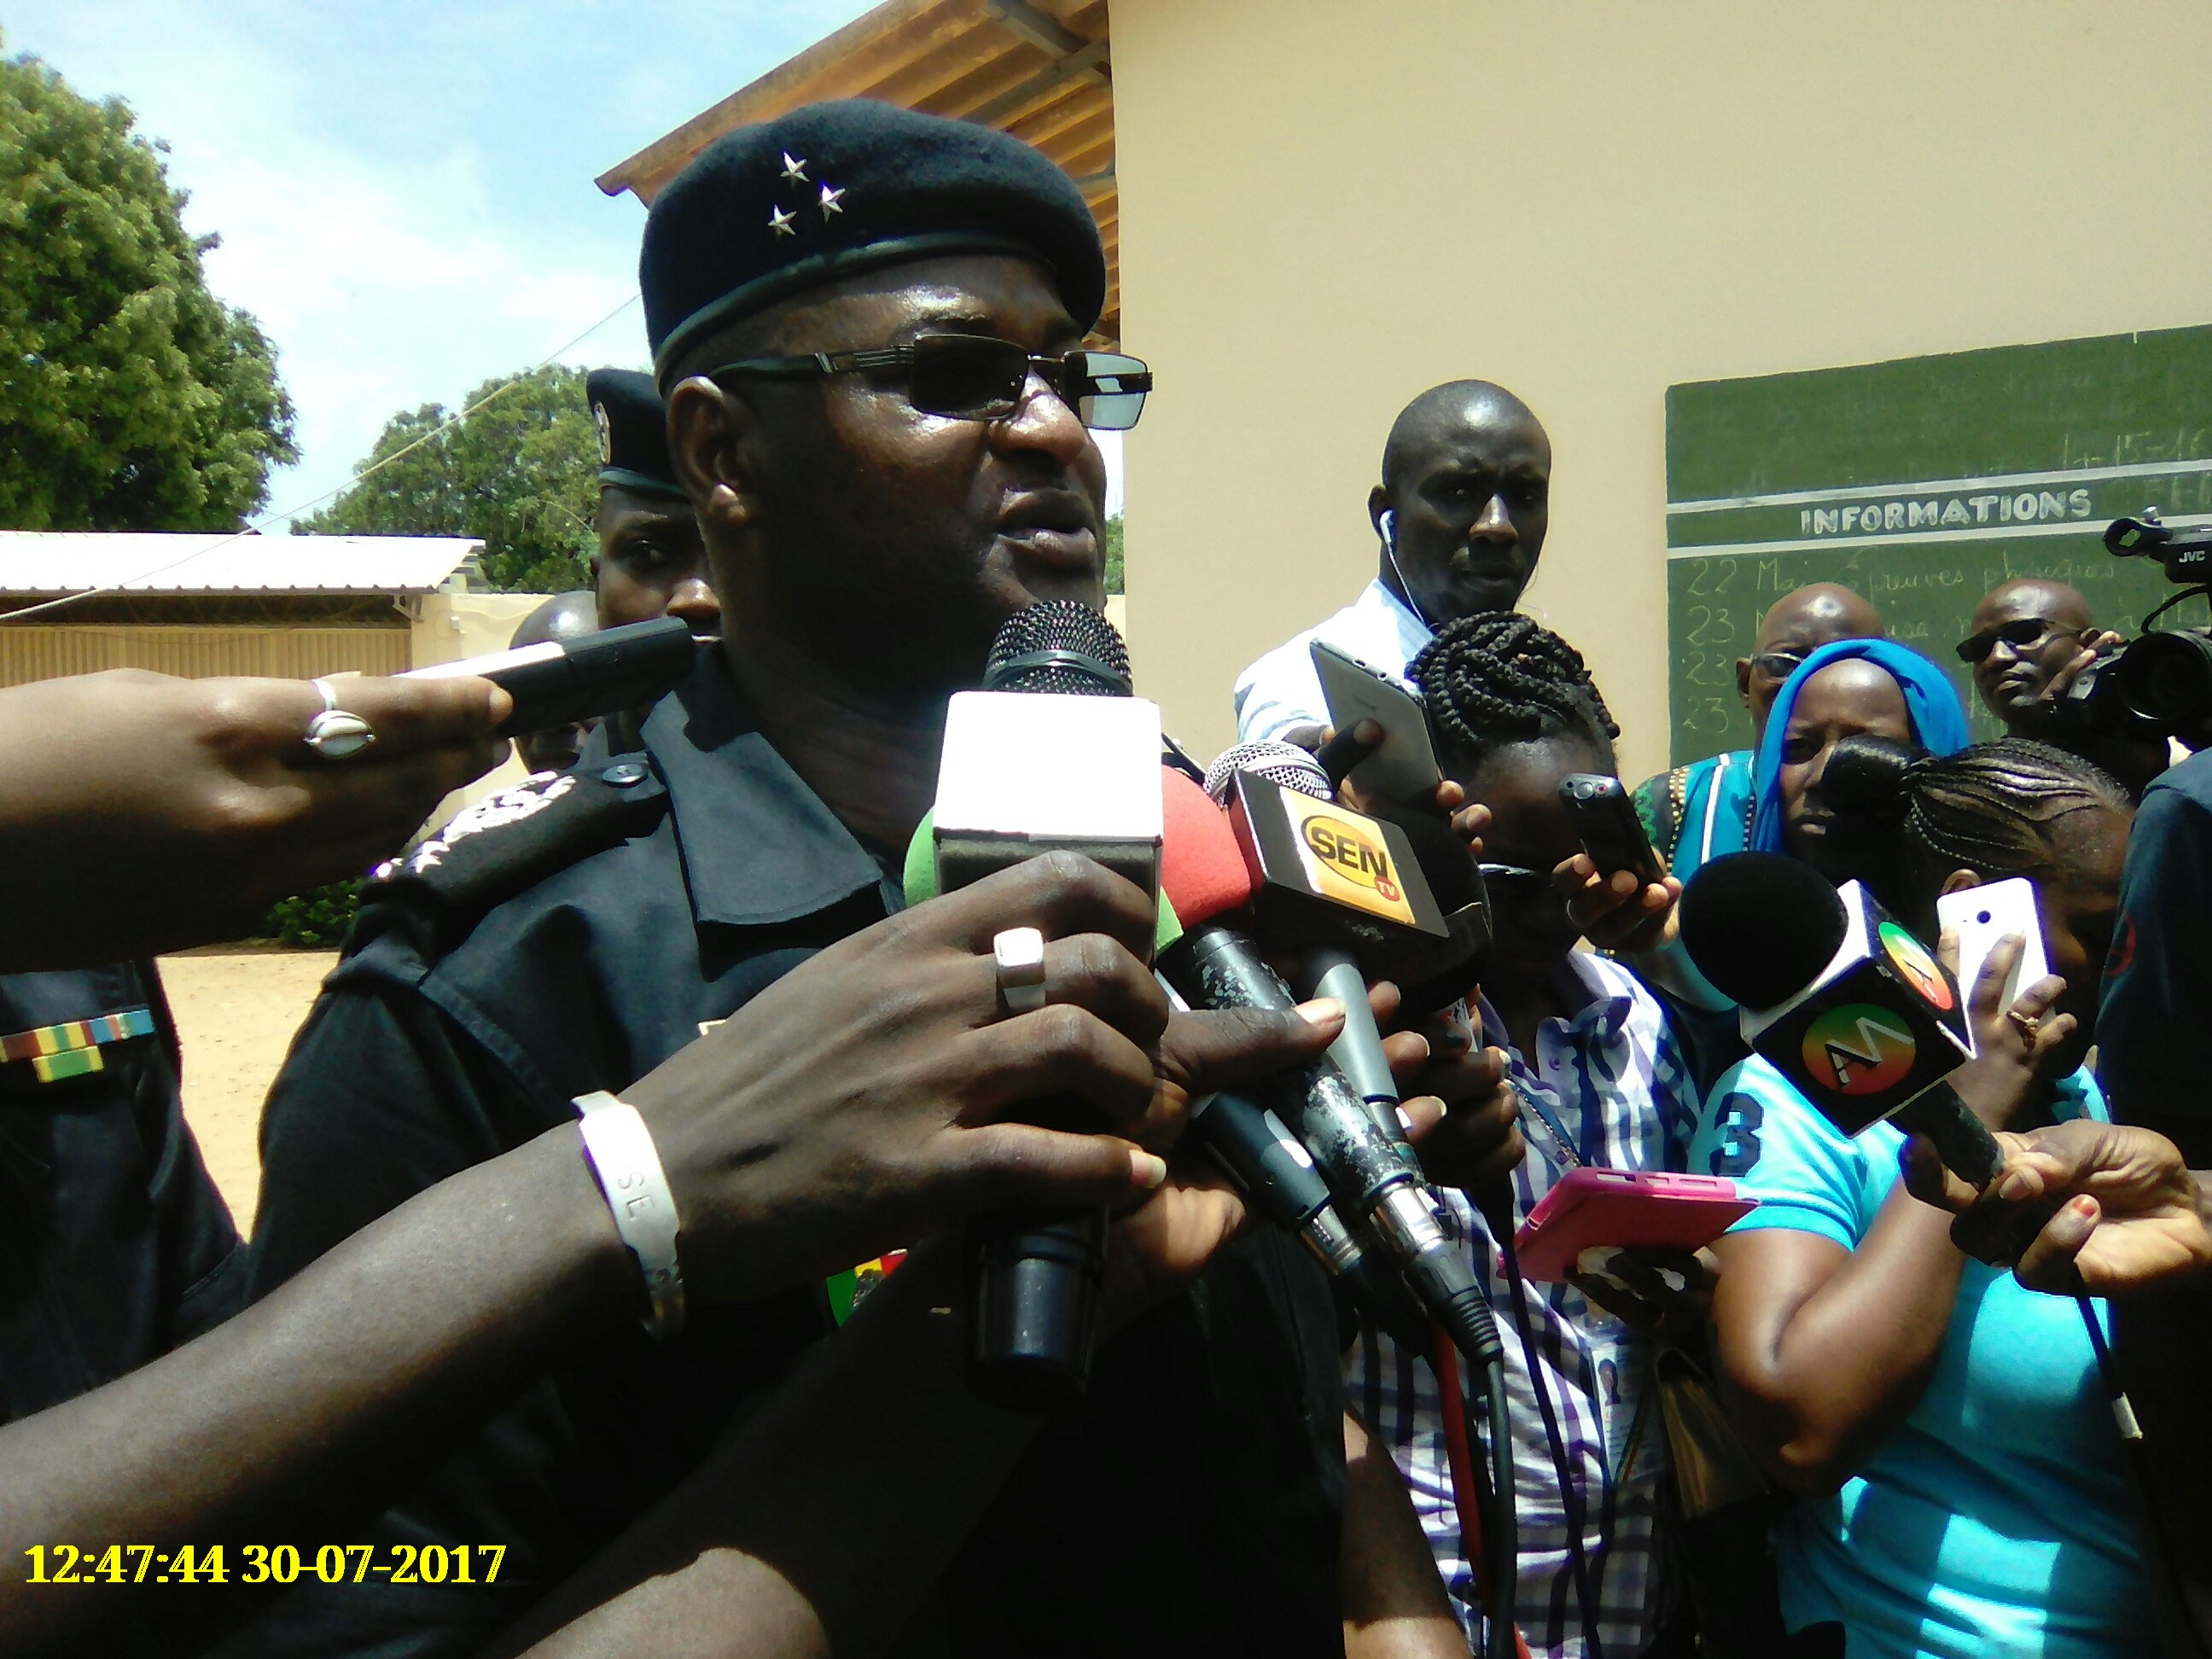 Police nationale : Inauguration du laboratoire national de drogue ce matin